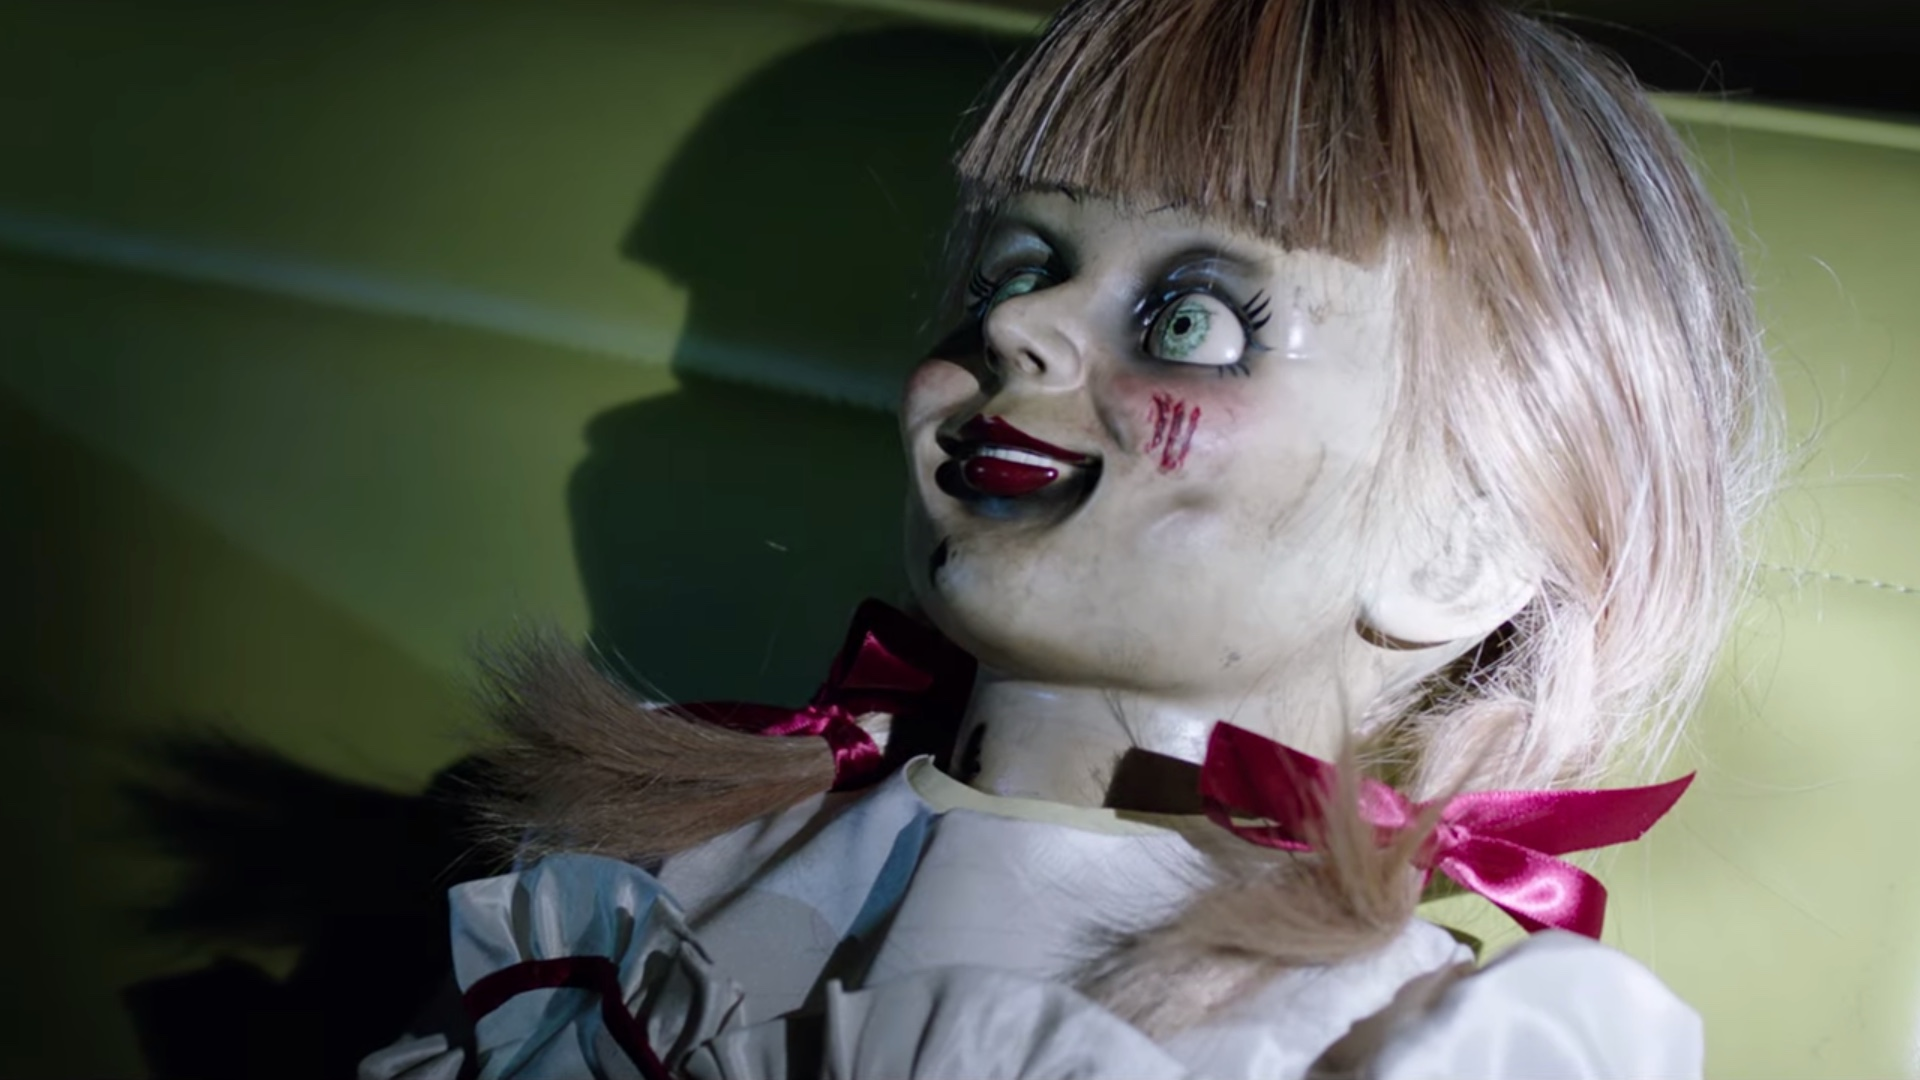 enjoy-the-terrifying-new-trailer-for-annabelle-come-home-social.jpg